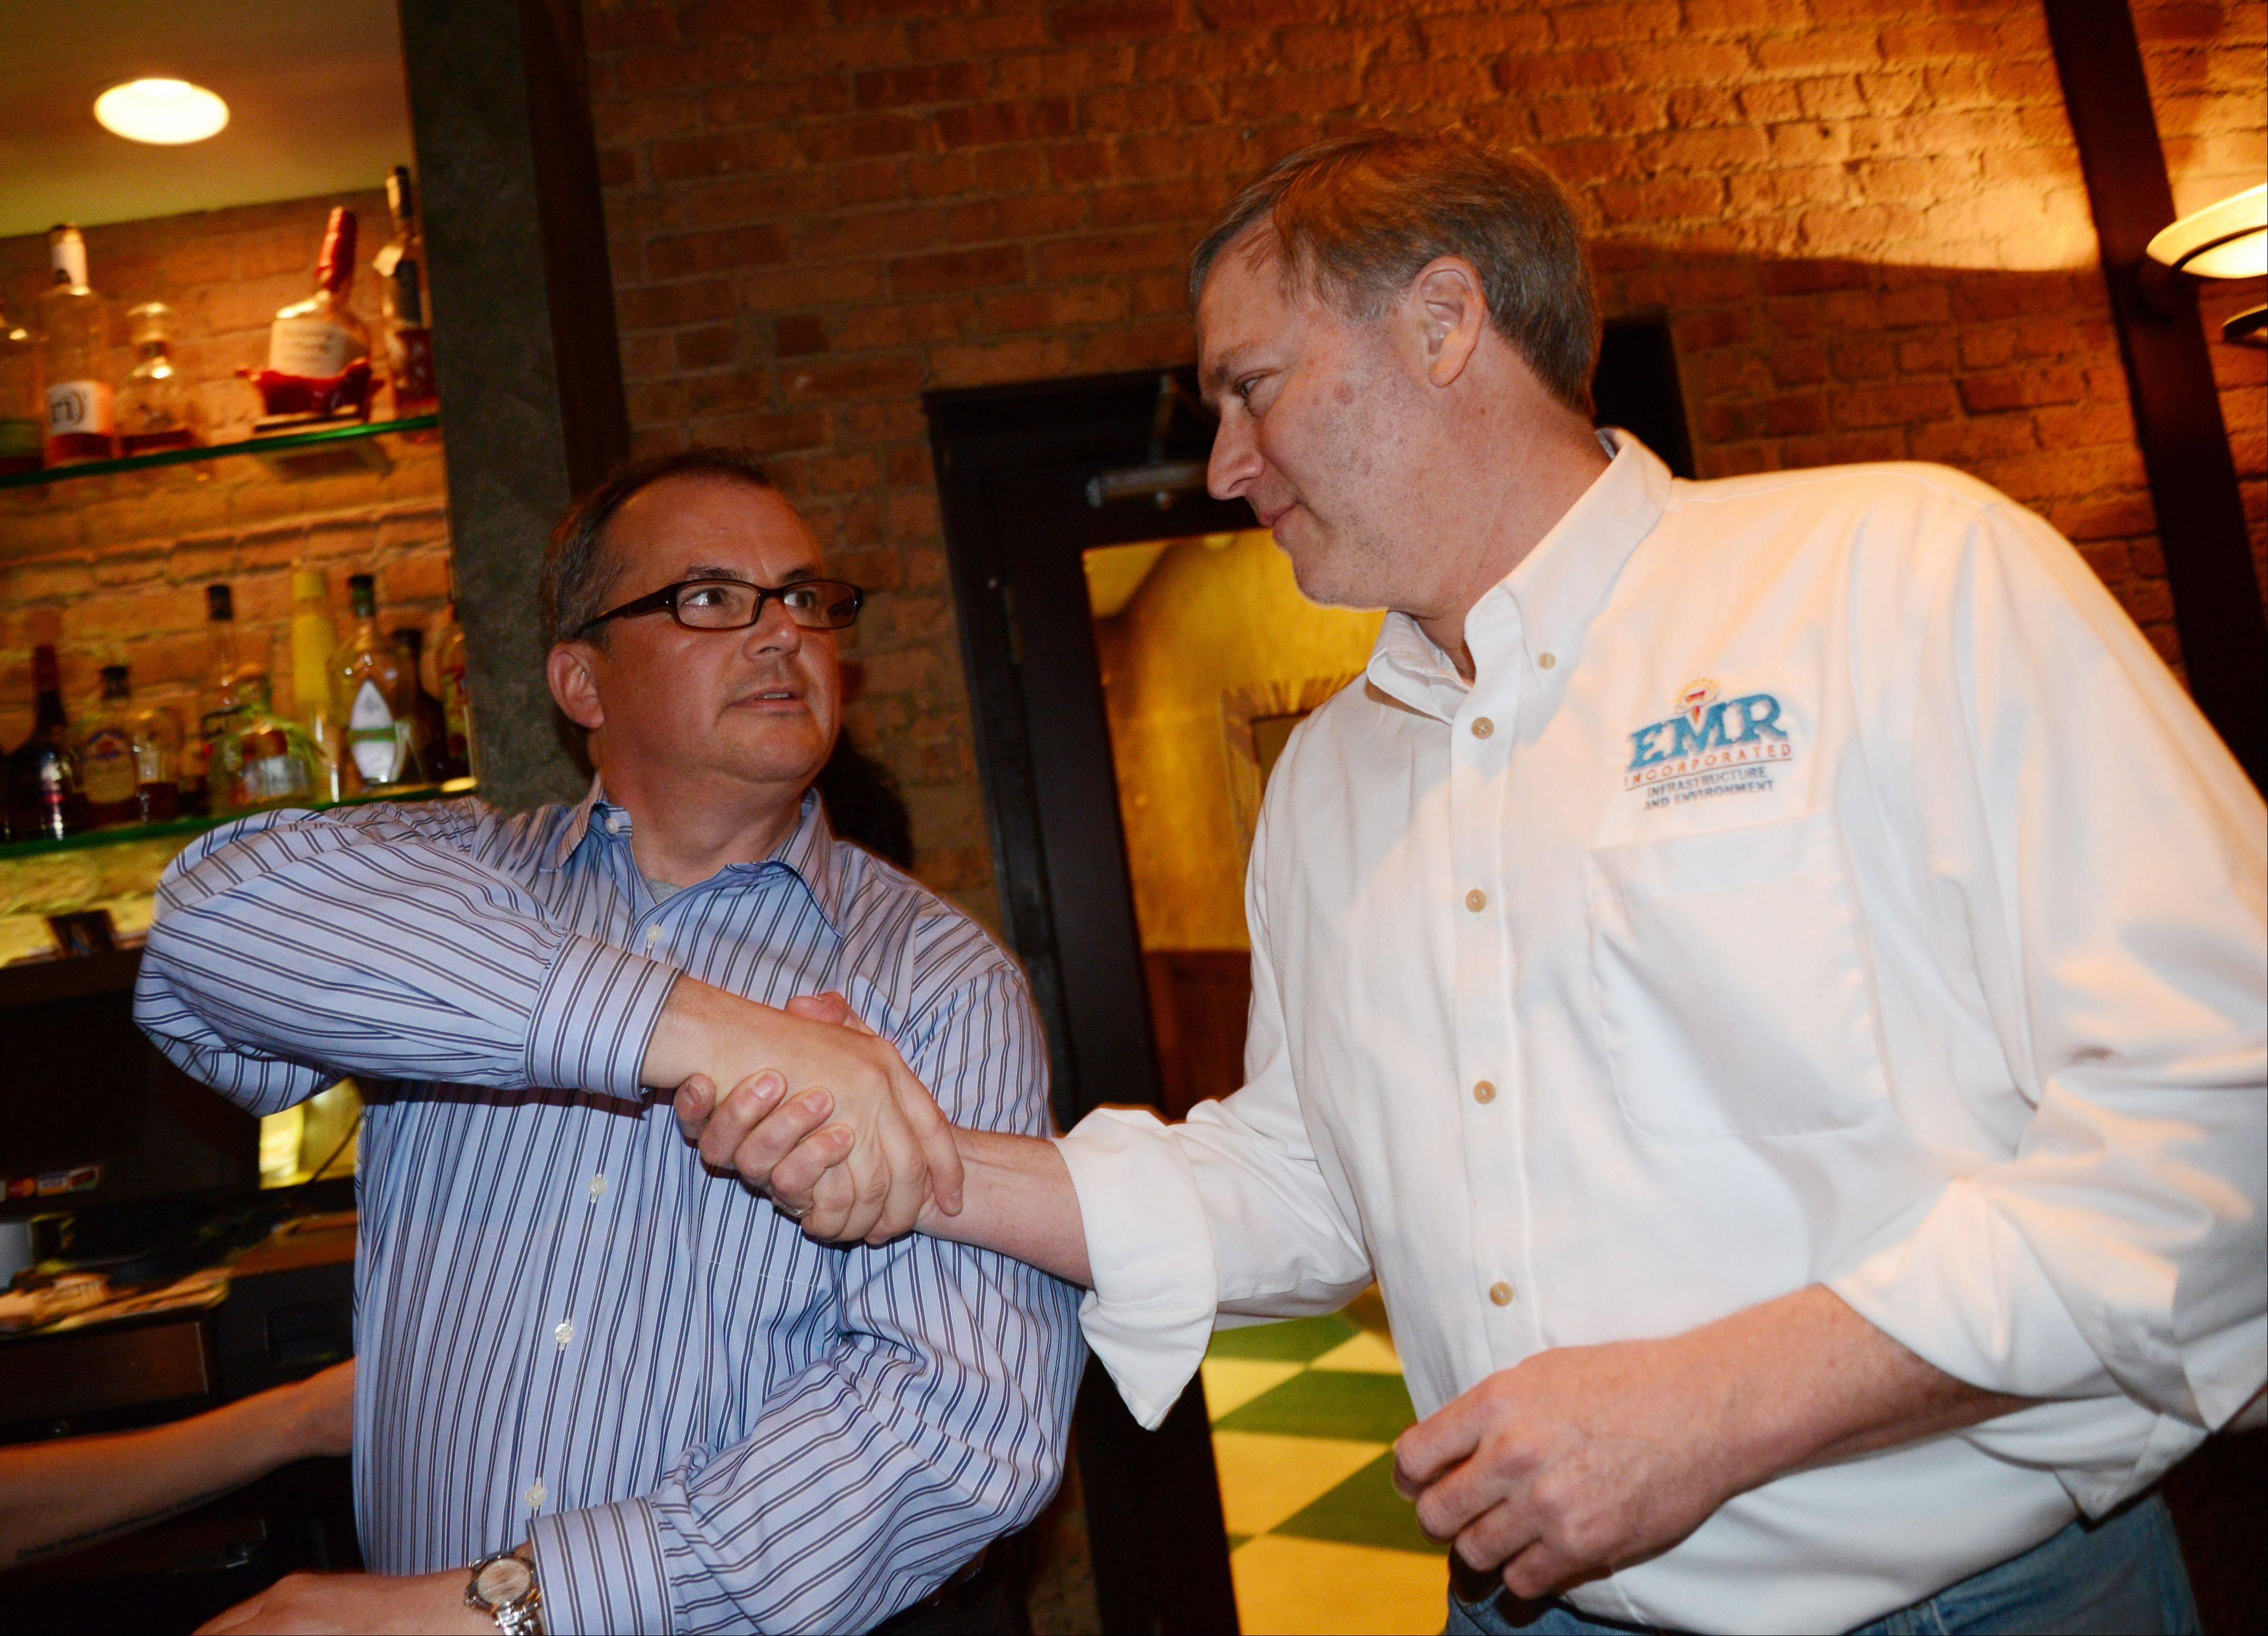 Rob Hanlon,left, one of the two candidates for Winfield village president, gets a hand shake from Jay Olsen on Tuesday. Hanlon lost to Erik Spande.